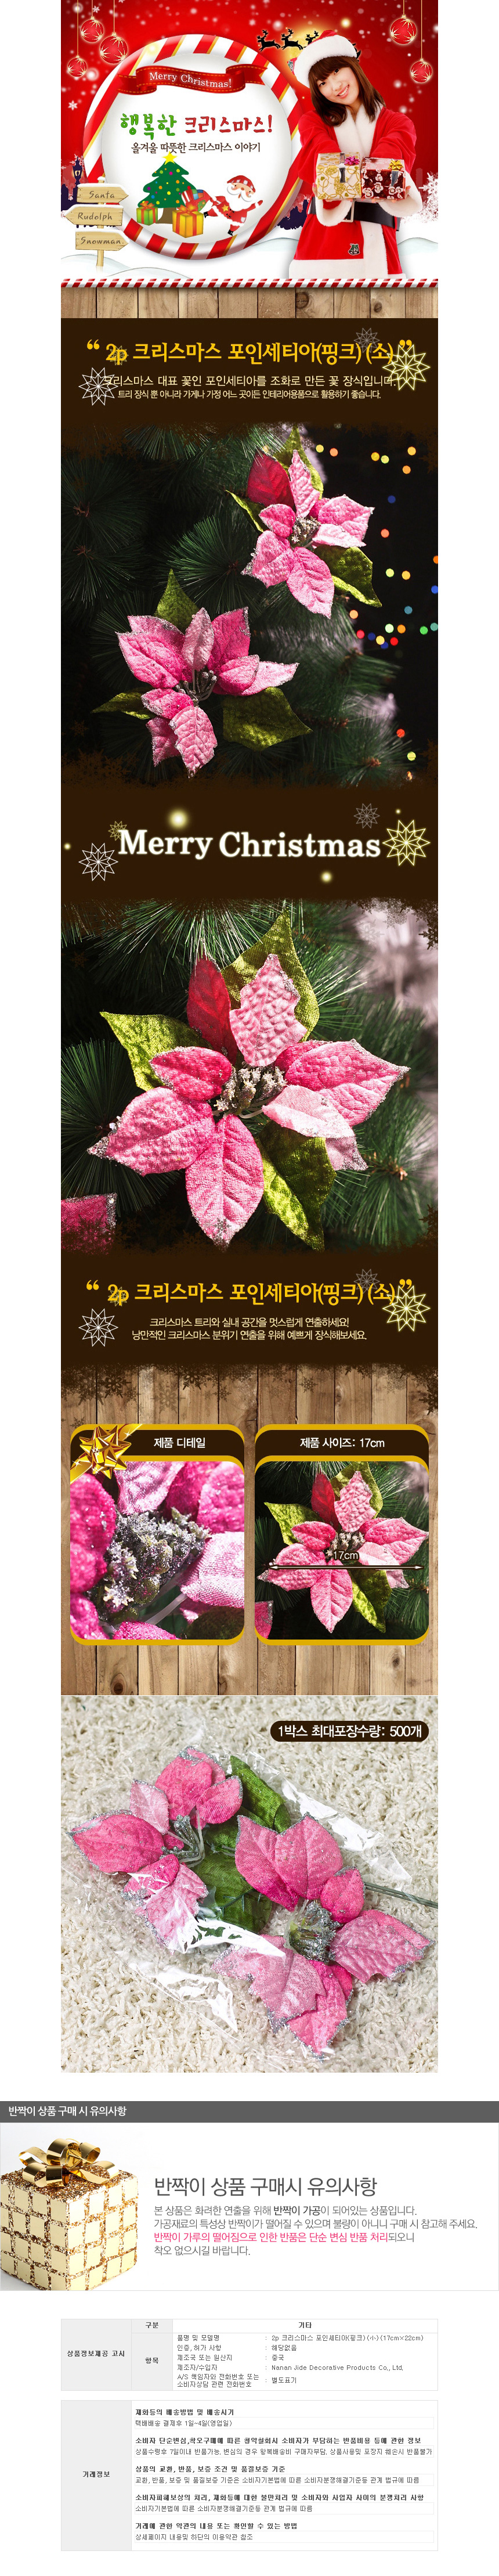 [ WINEQOK ] Christmas Goods / Christmas Poinsettia Pink Small ×